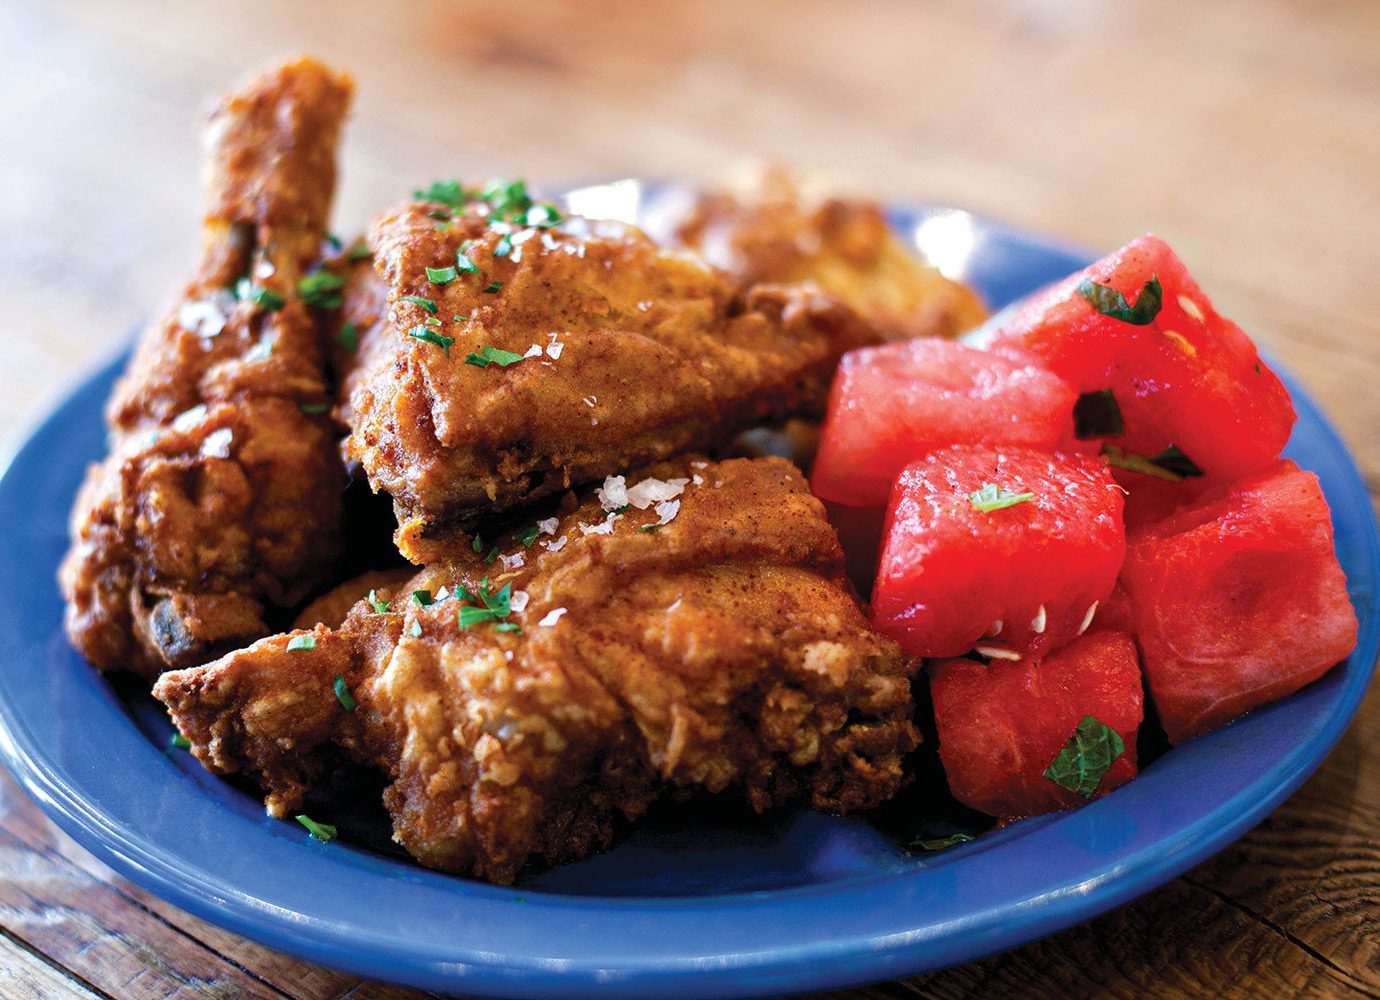 Travel Tips plate food dish fried food fried chicken cuisine animal source foods blue meat recipe chicken meat asian food meal